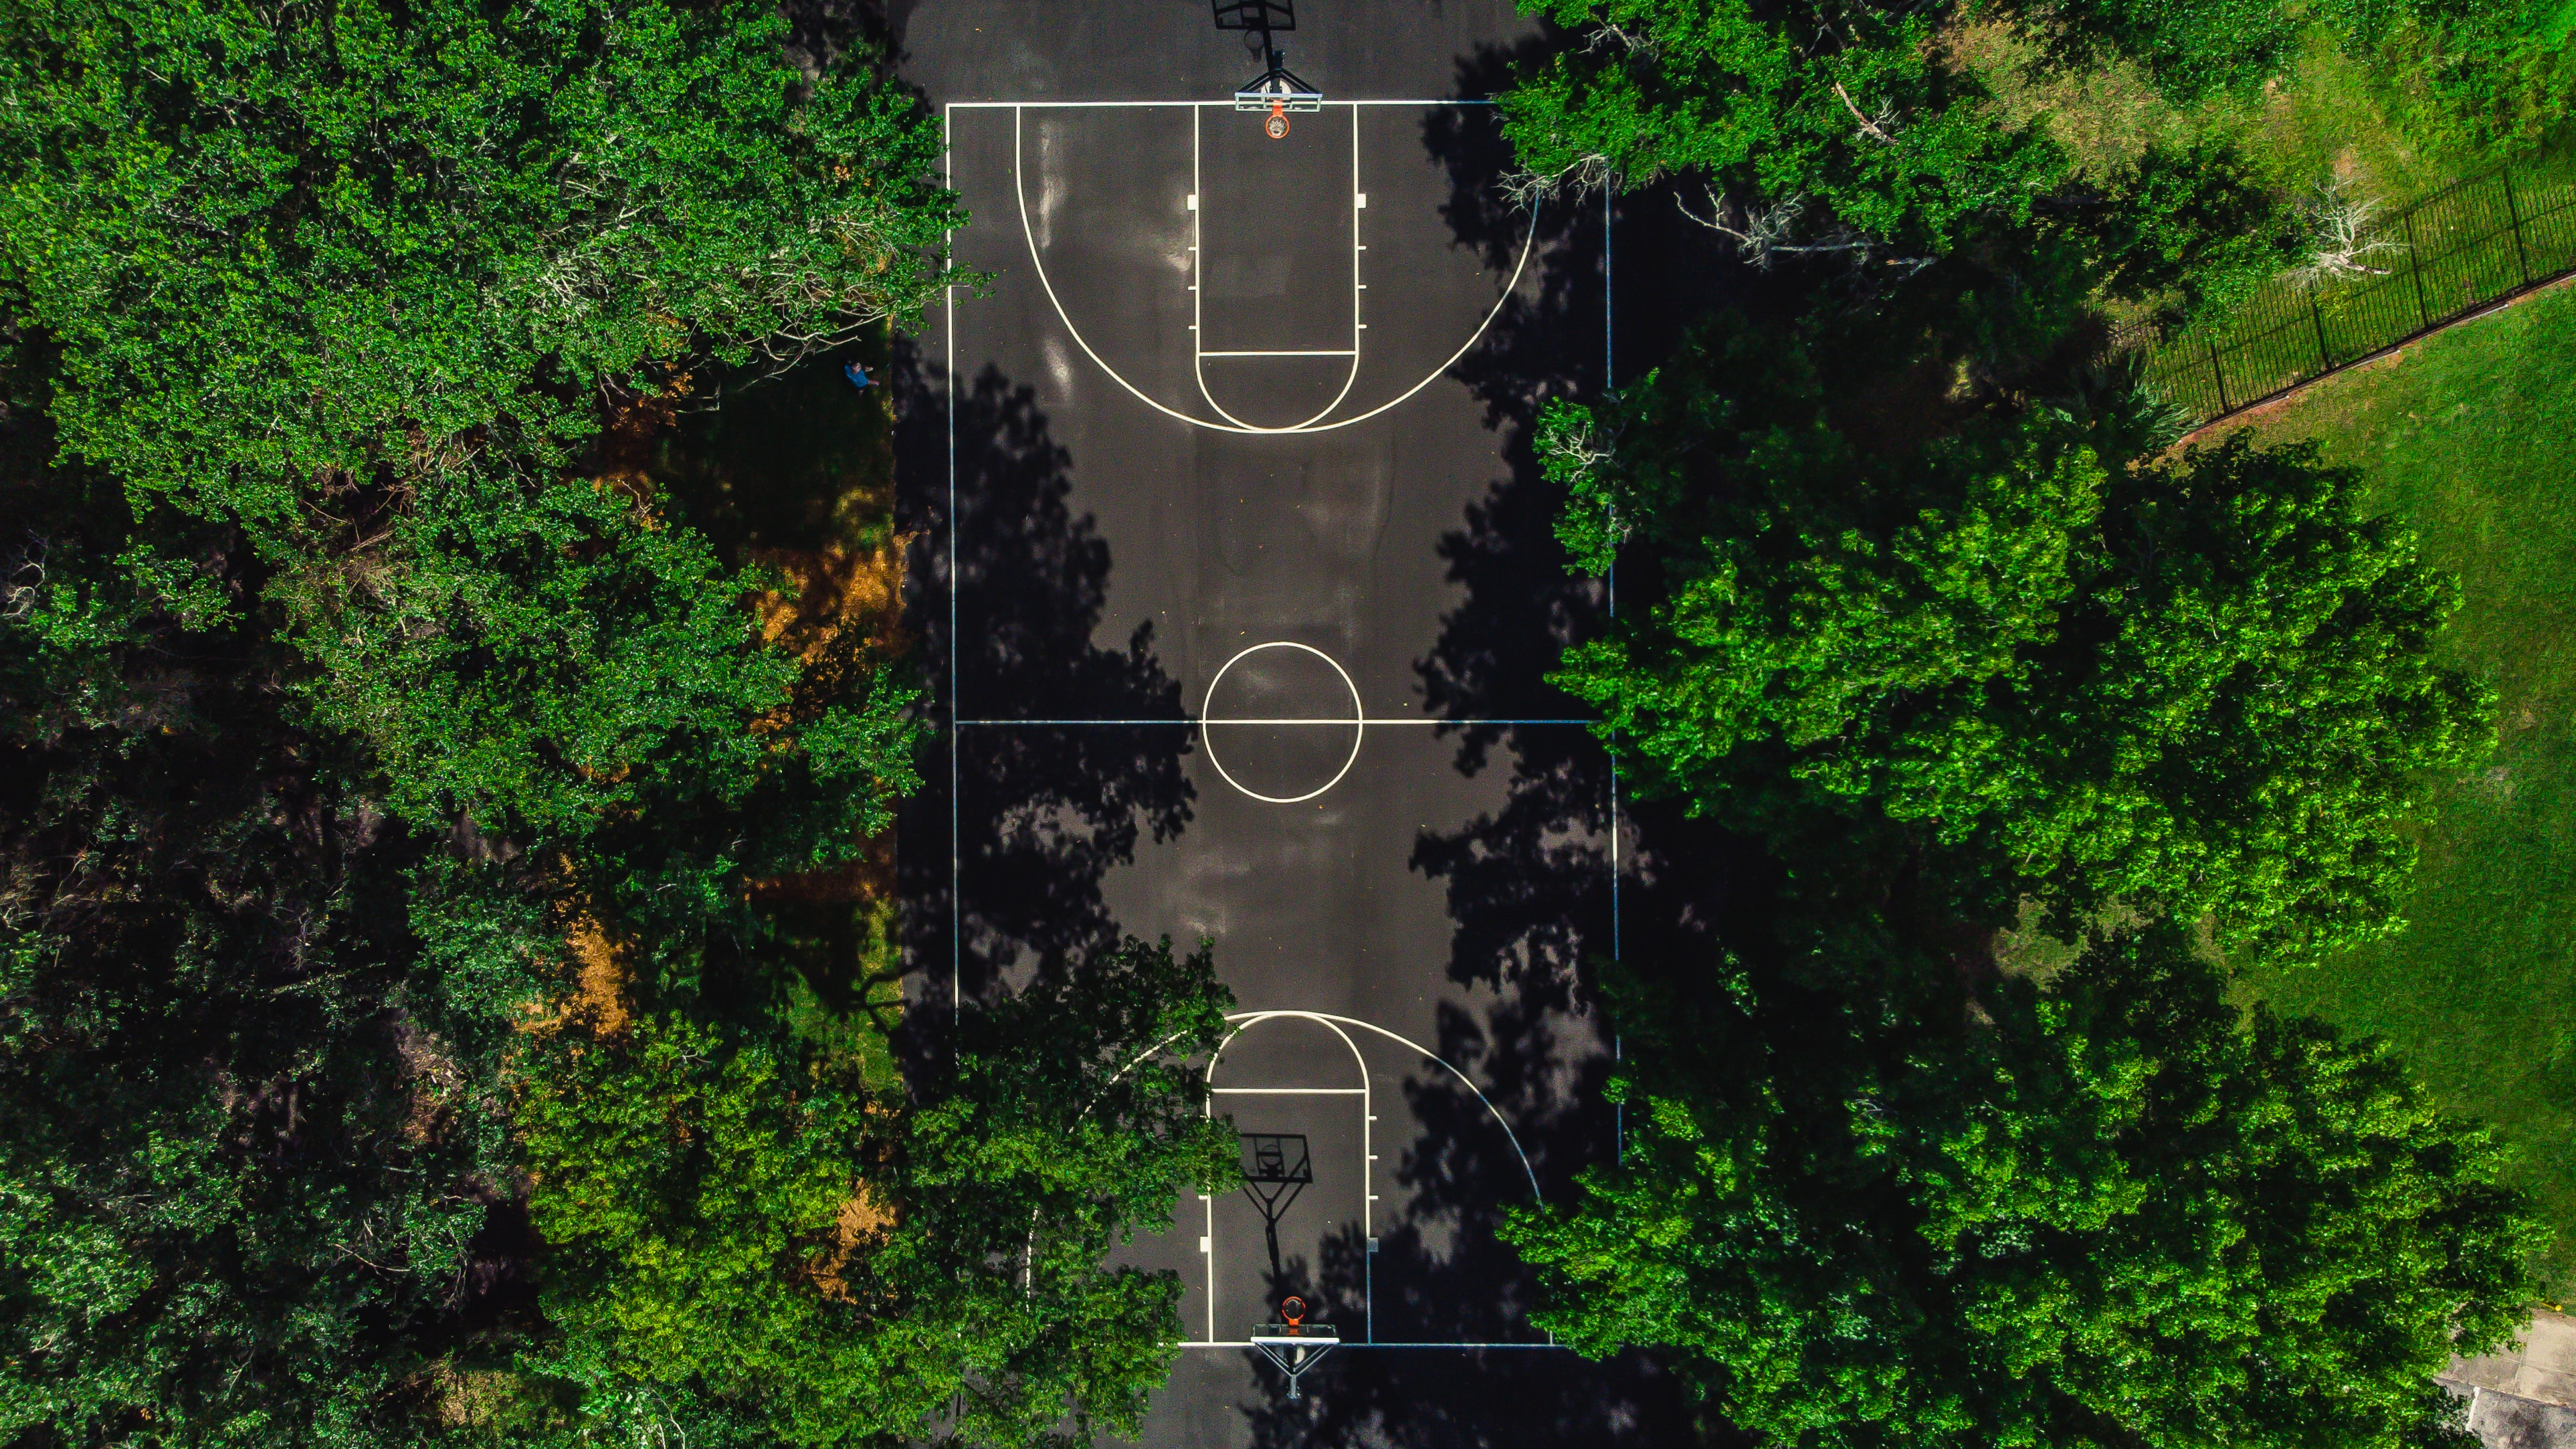 bird's eye view of basketball court